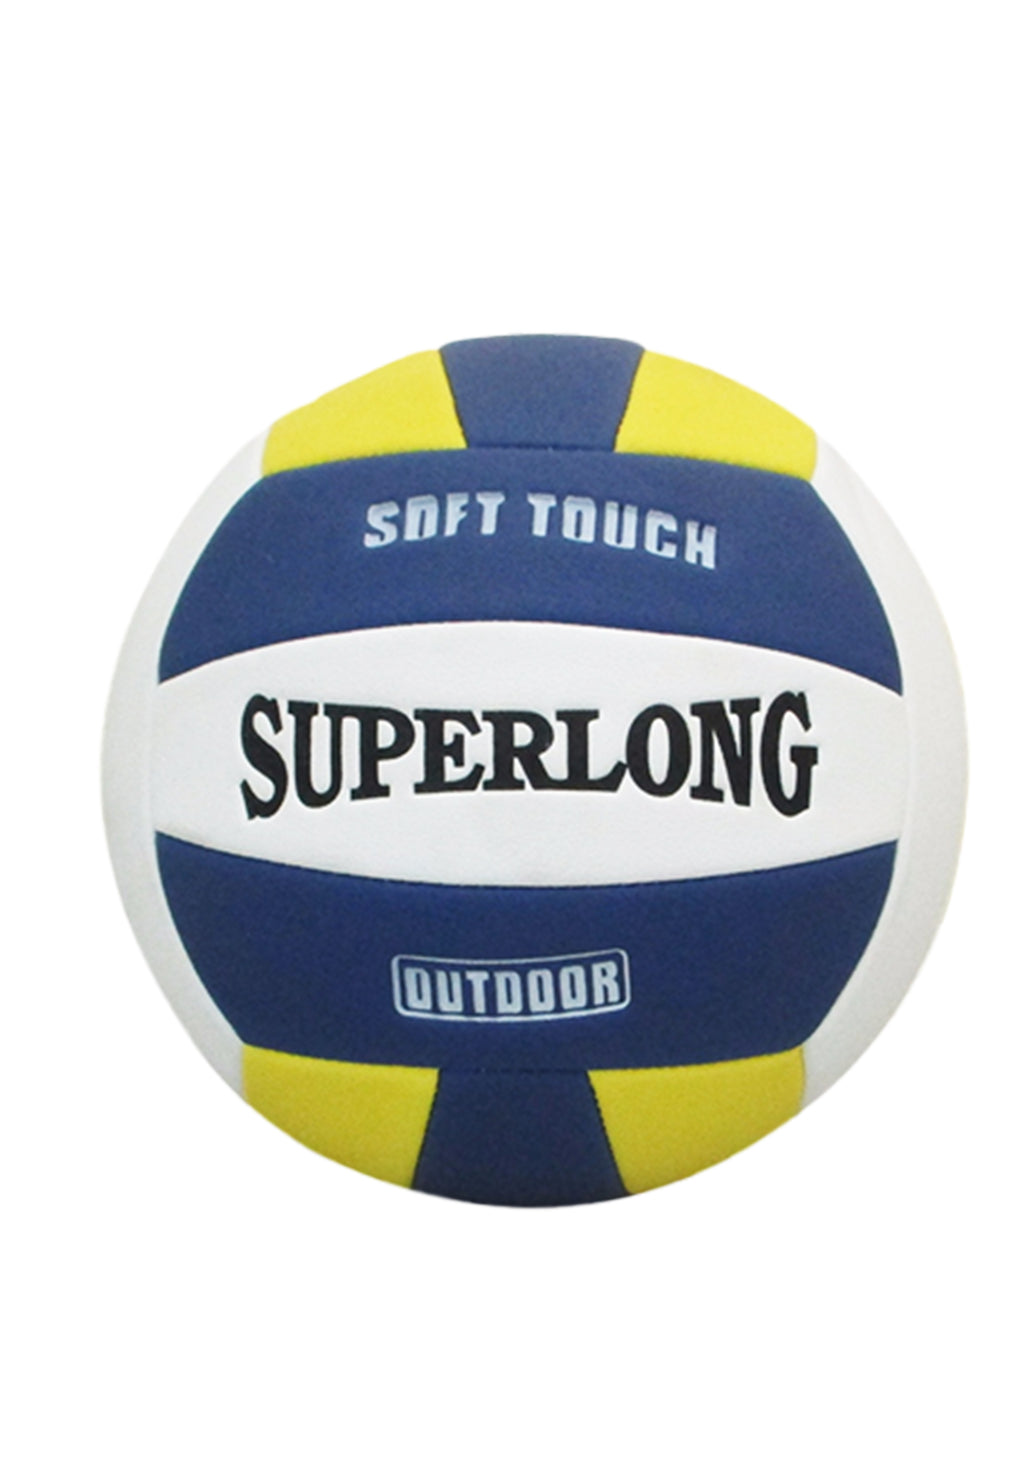 SUPERLONG SOFT TOUCH OUTDOOR VOLLEYBALL